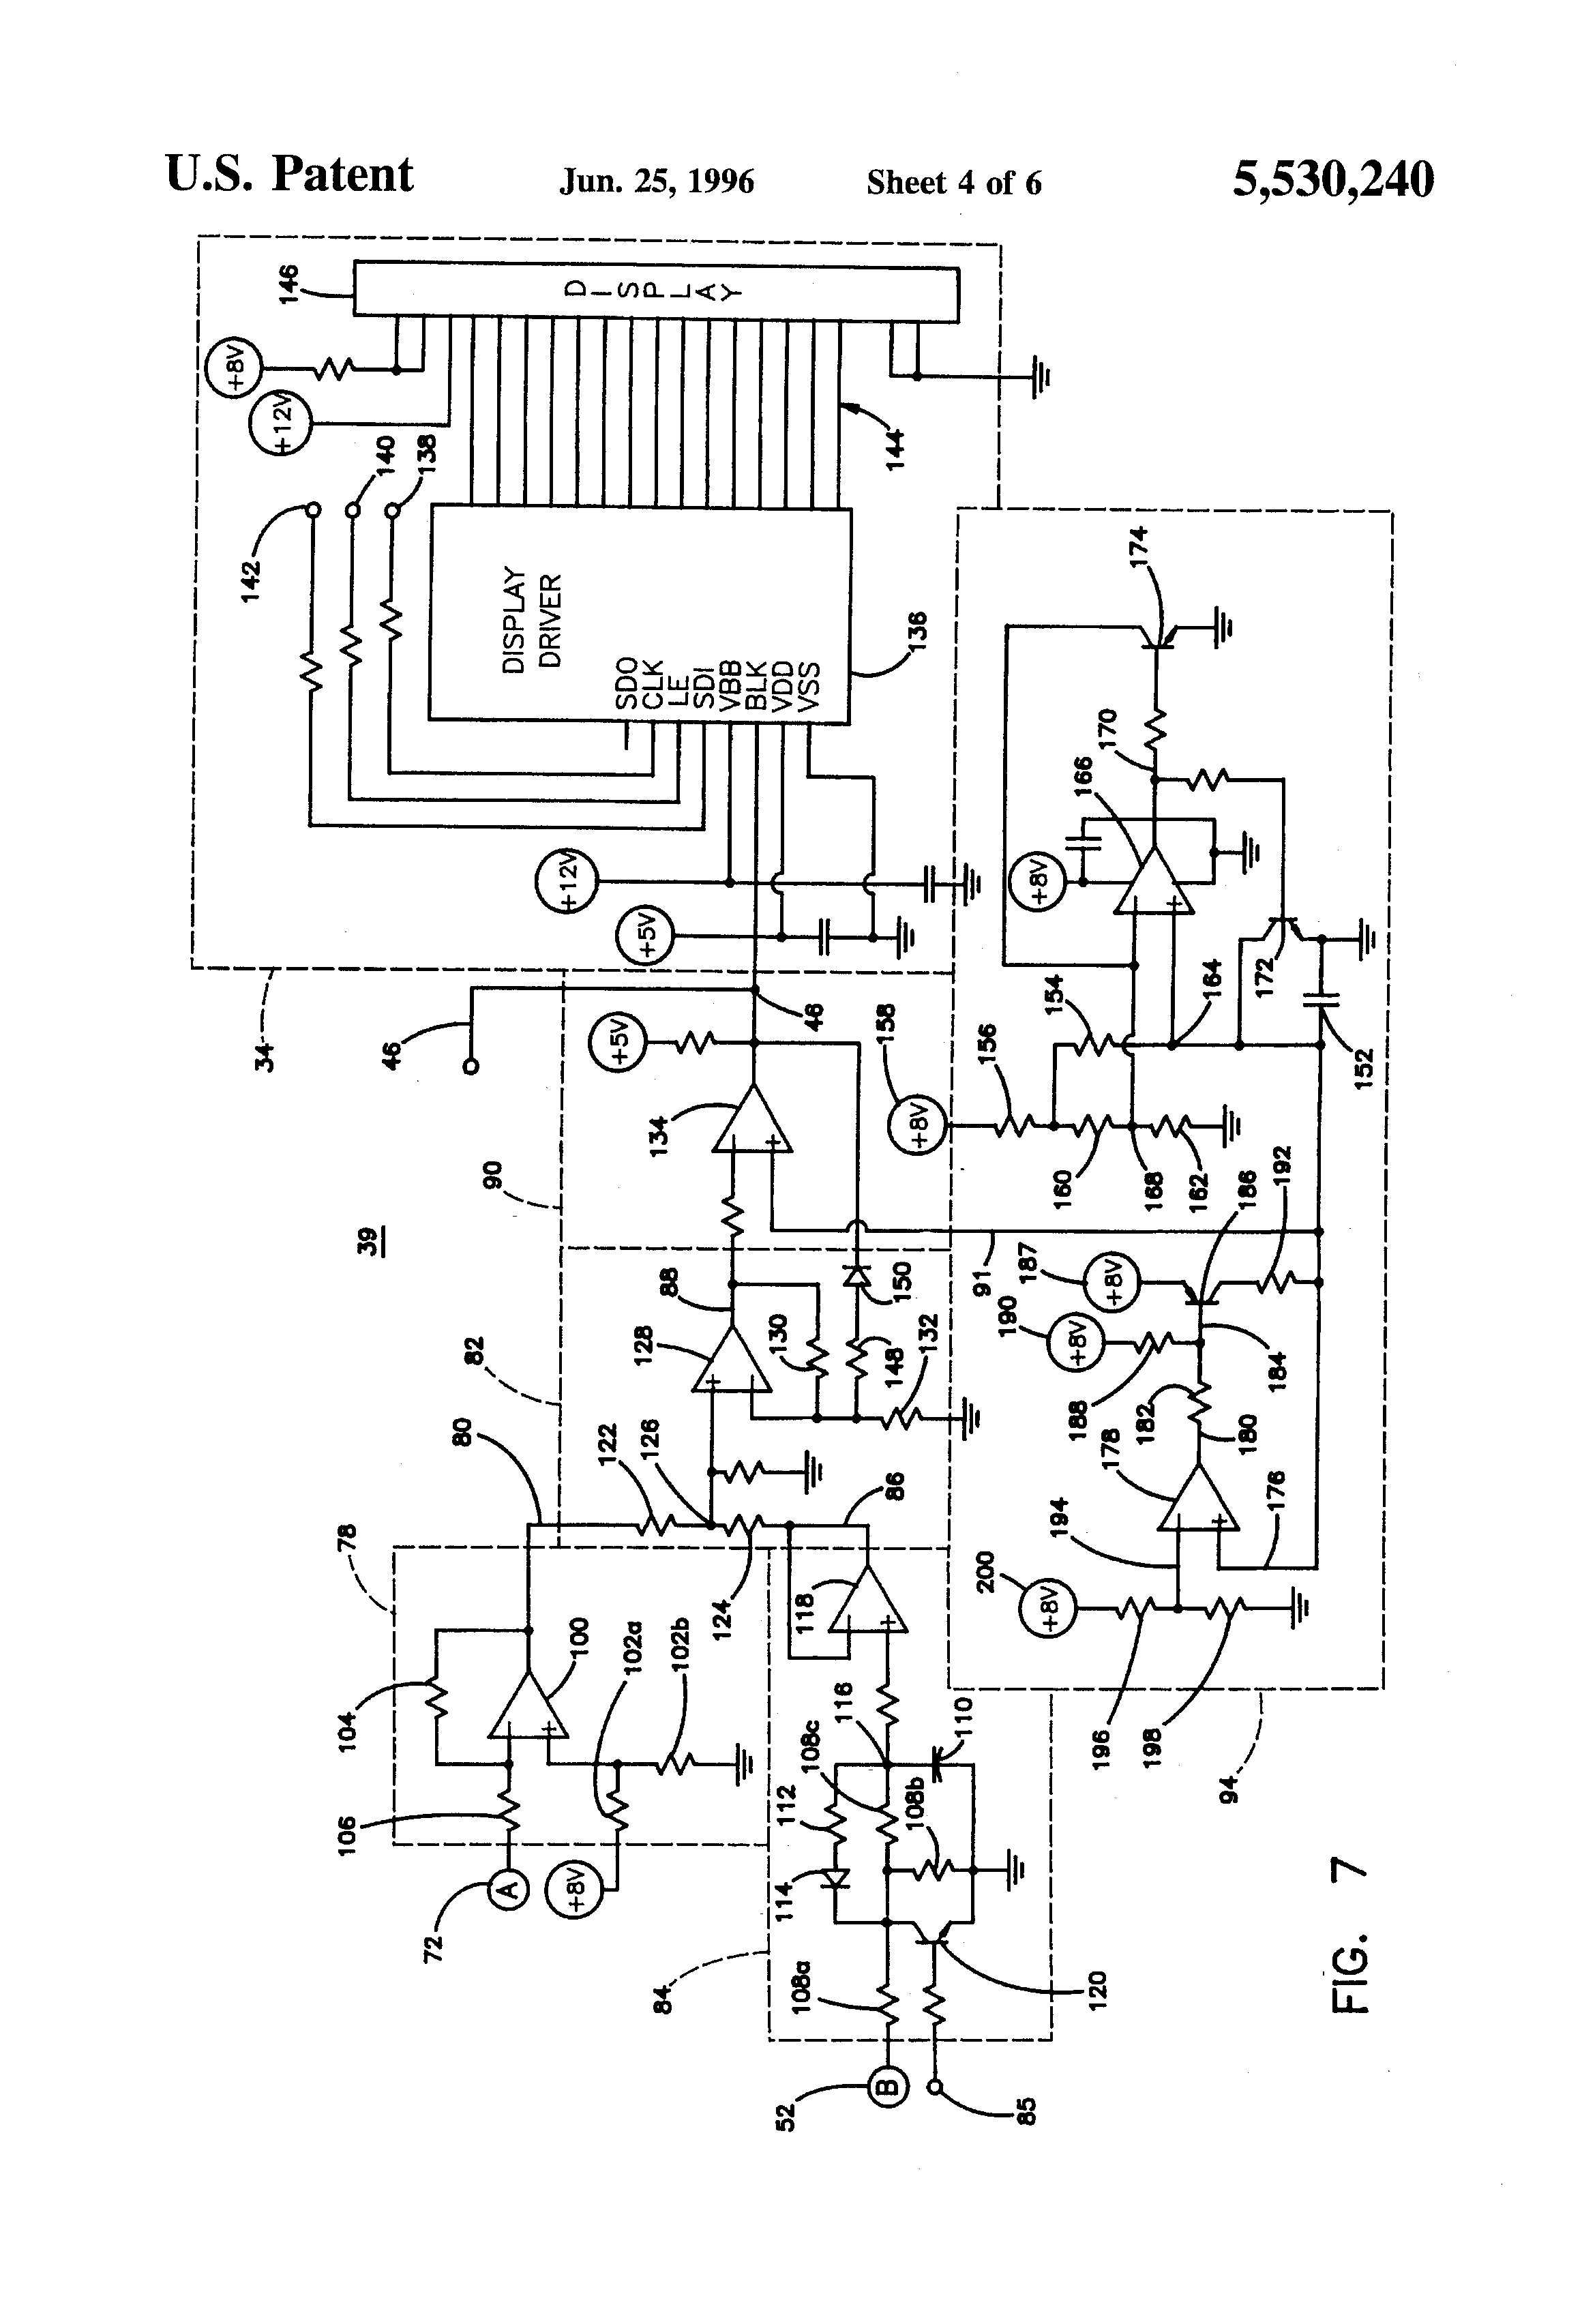 velvac wiring diagram wiring library Signal Stat Wiring Diagram patent us5530240 display for automatic rearview mirror velvac gas cap velvac wiring diagram